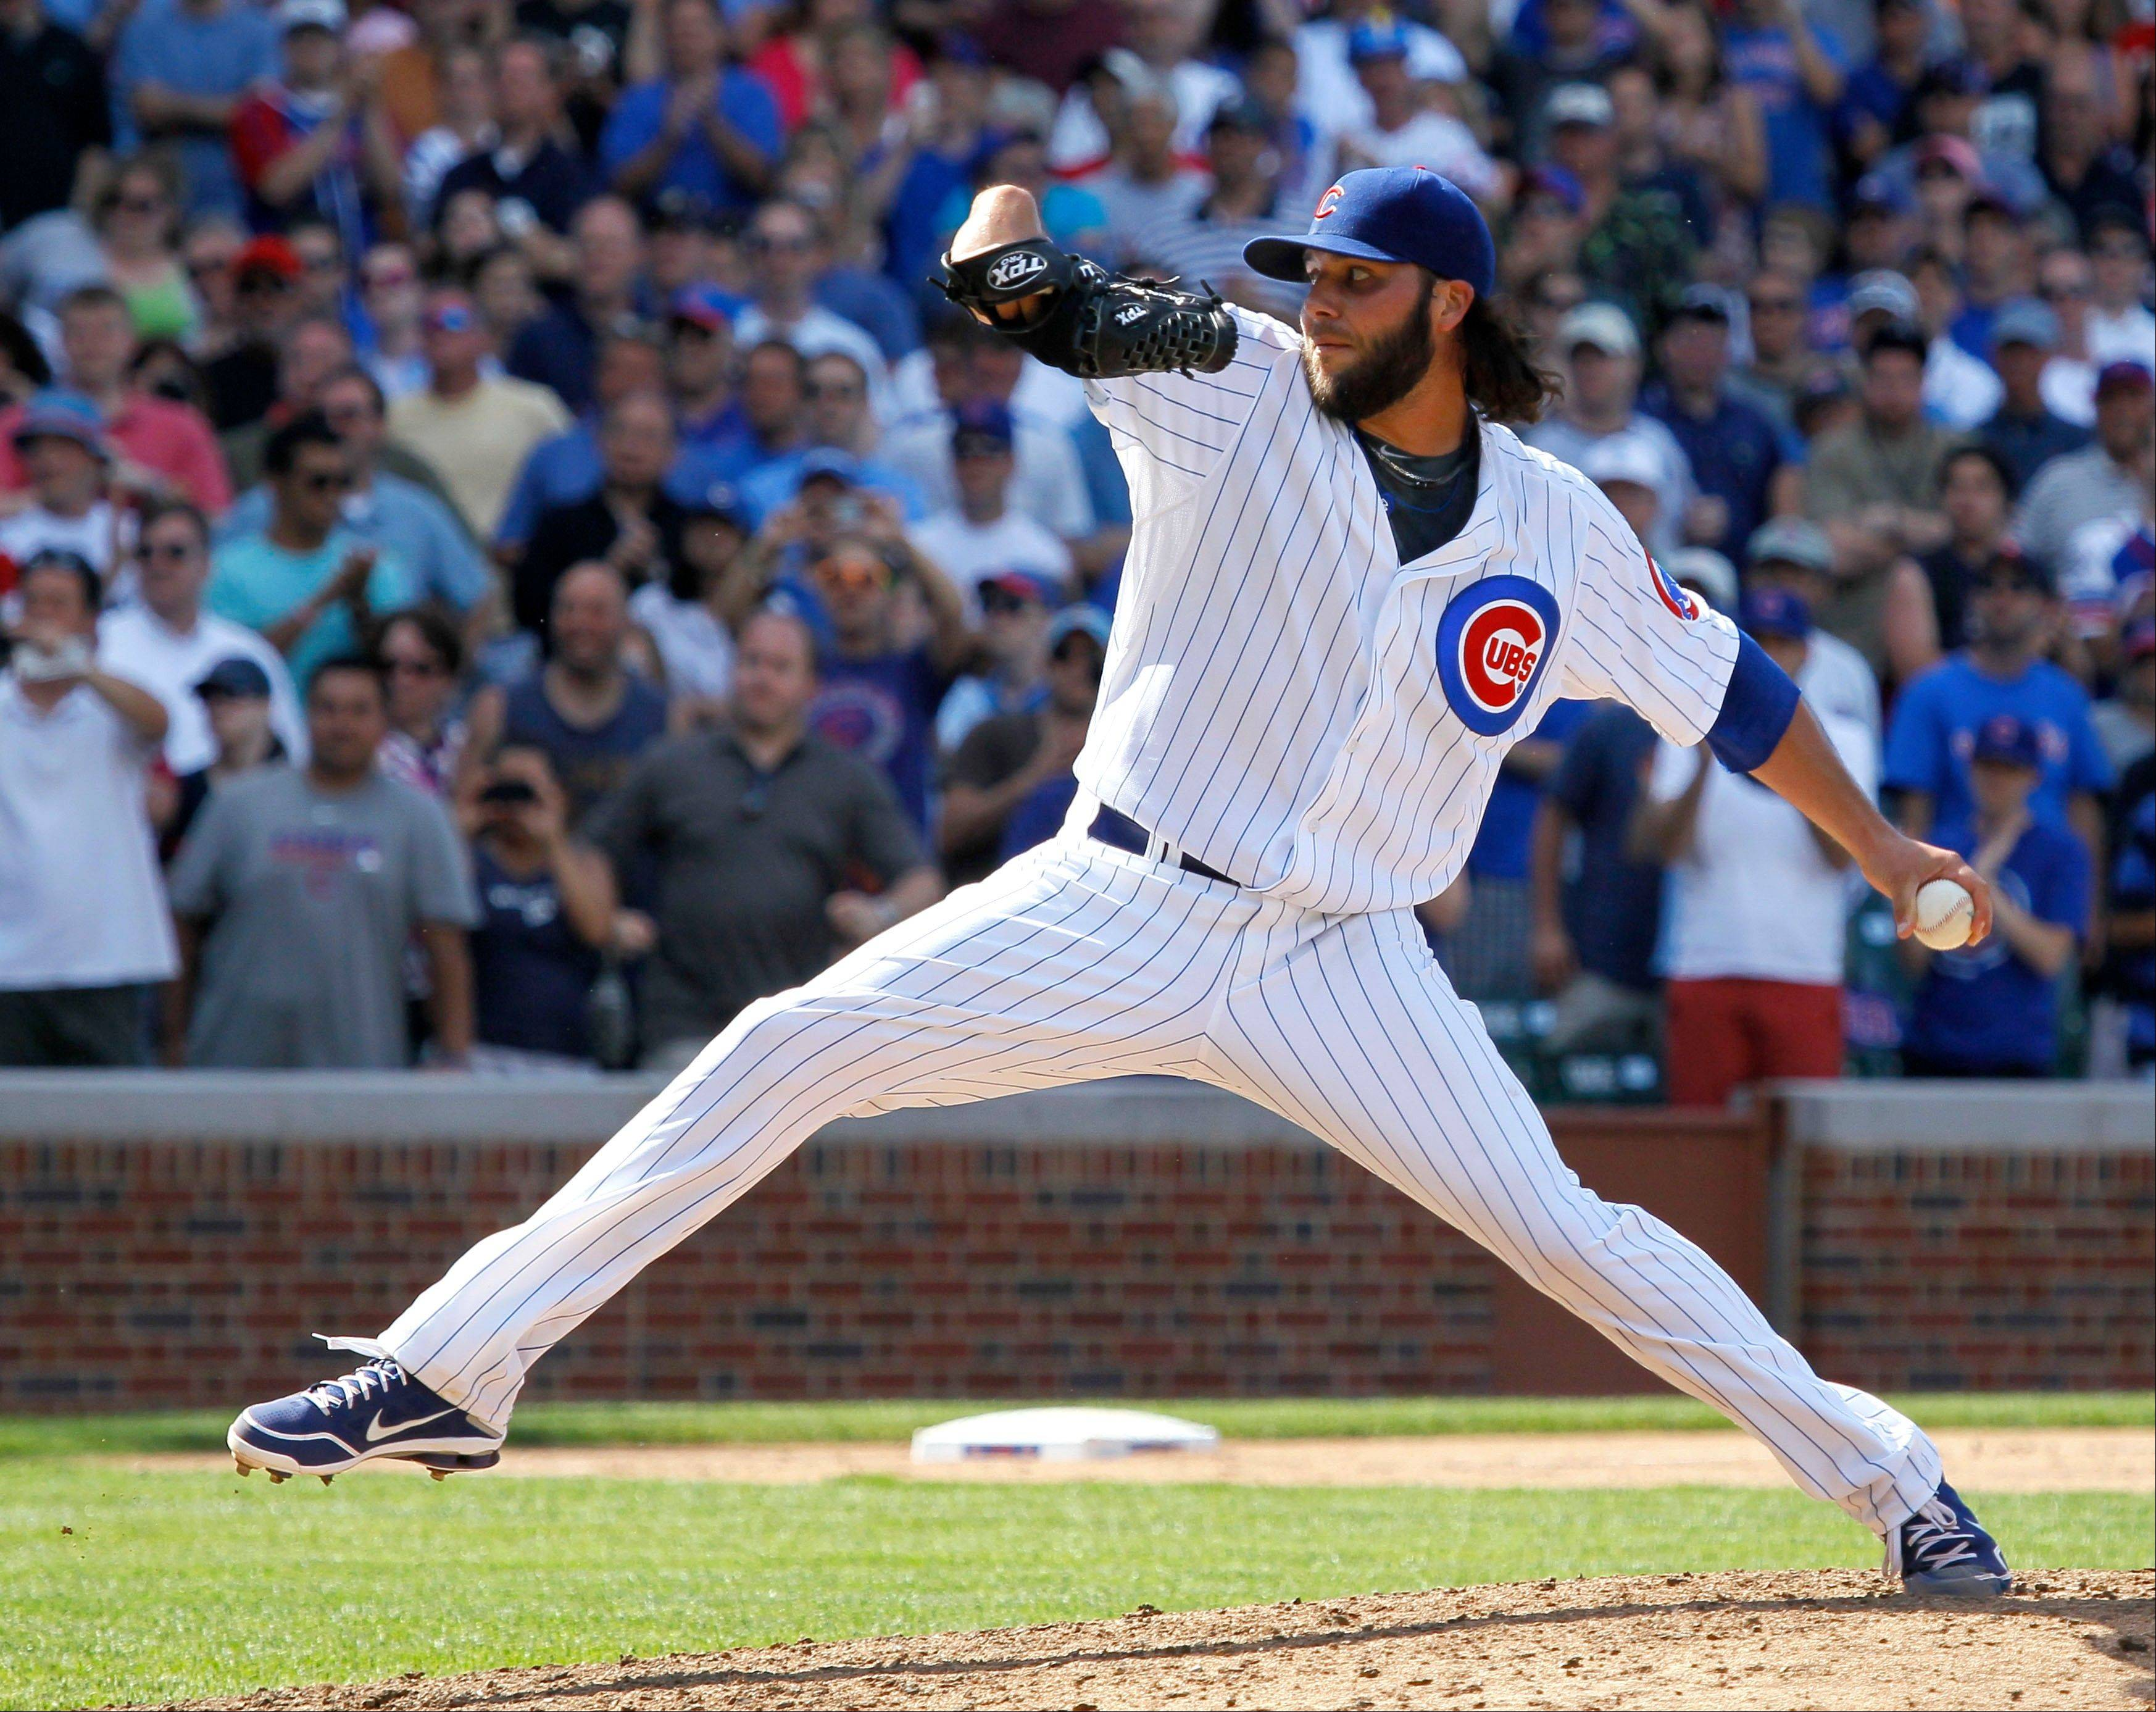 Cubs relief pitcher James Russell is more valuable to the bullpen in a variety of roles.